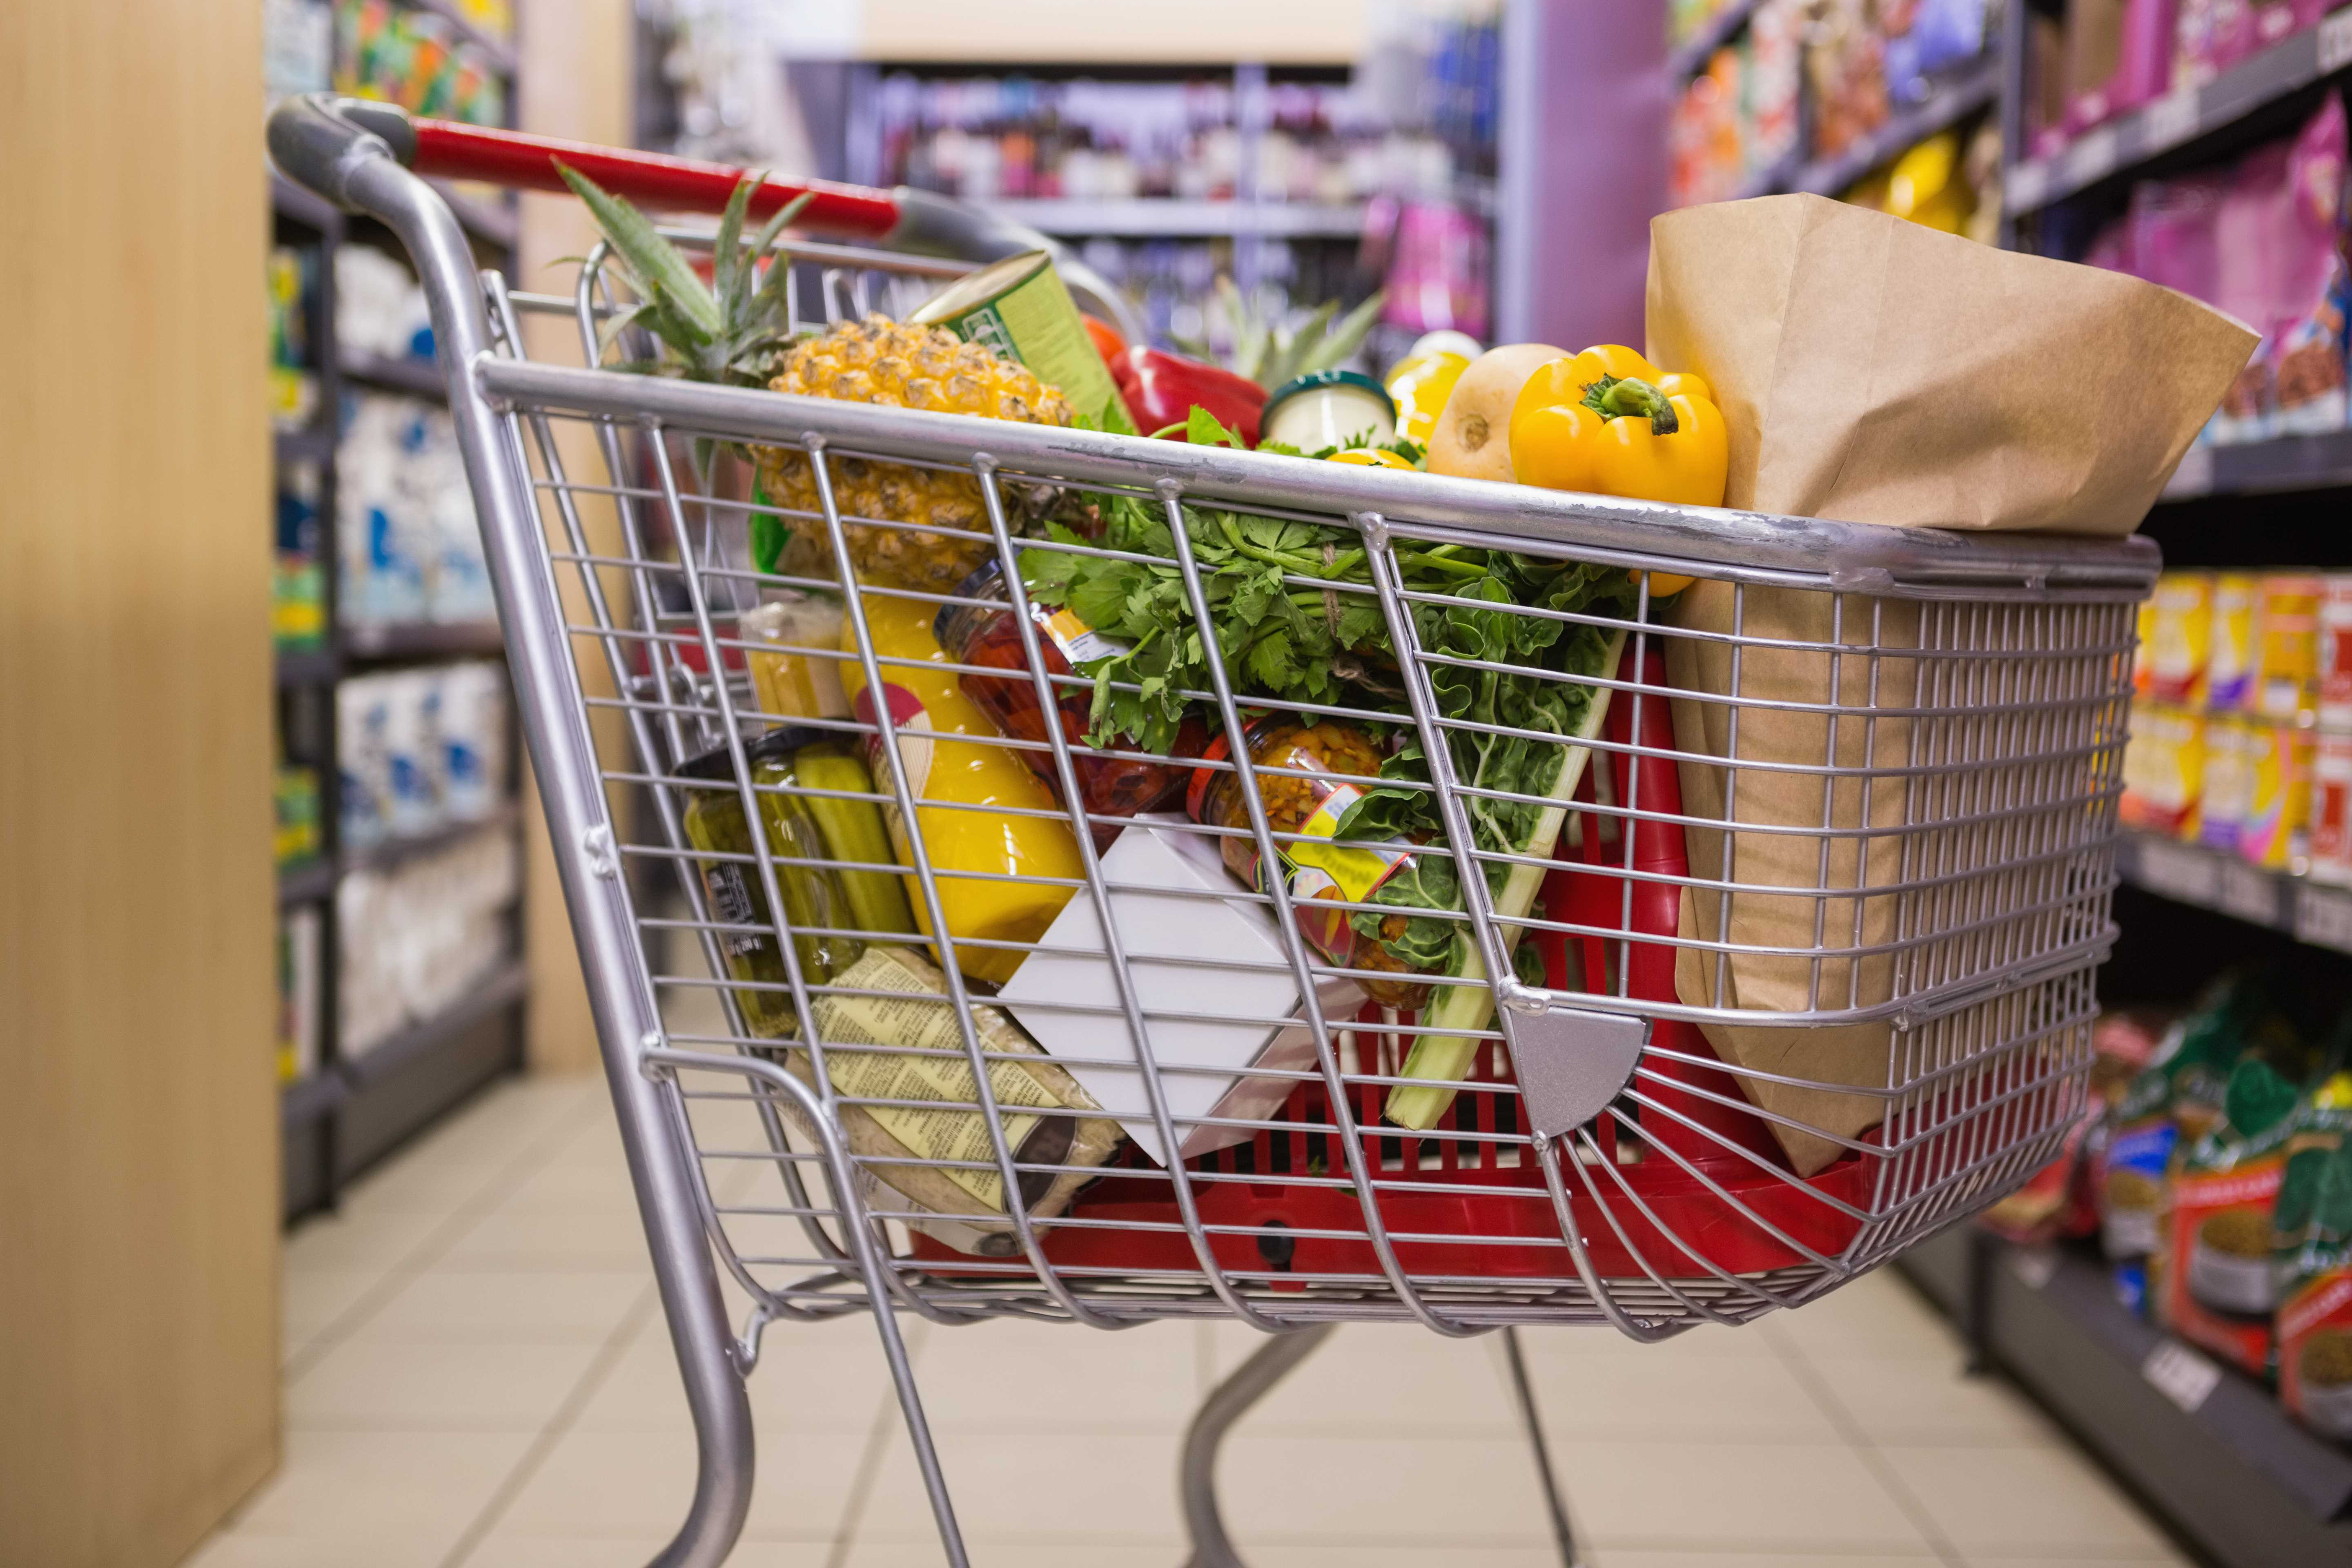 Self-insured grocery chain can't be sued as an insurer